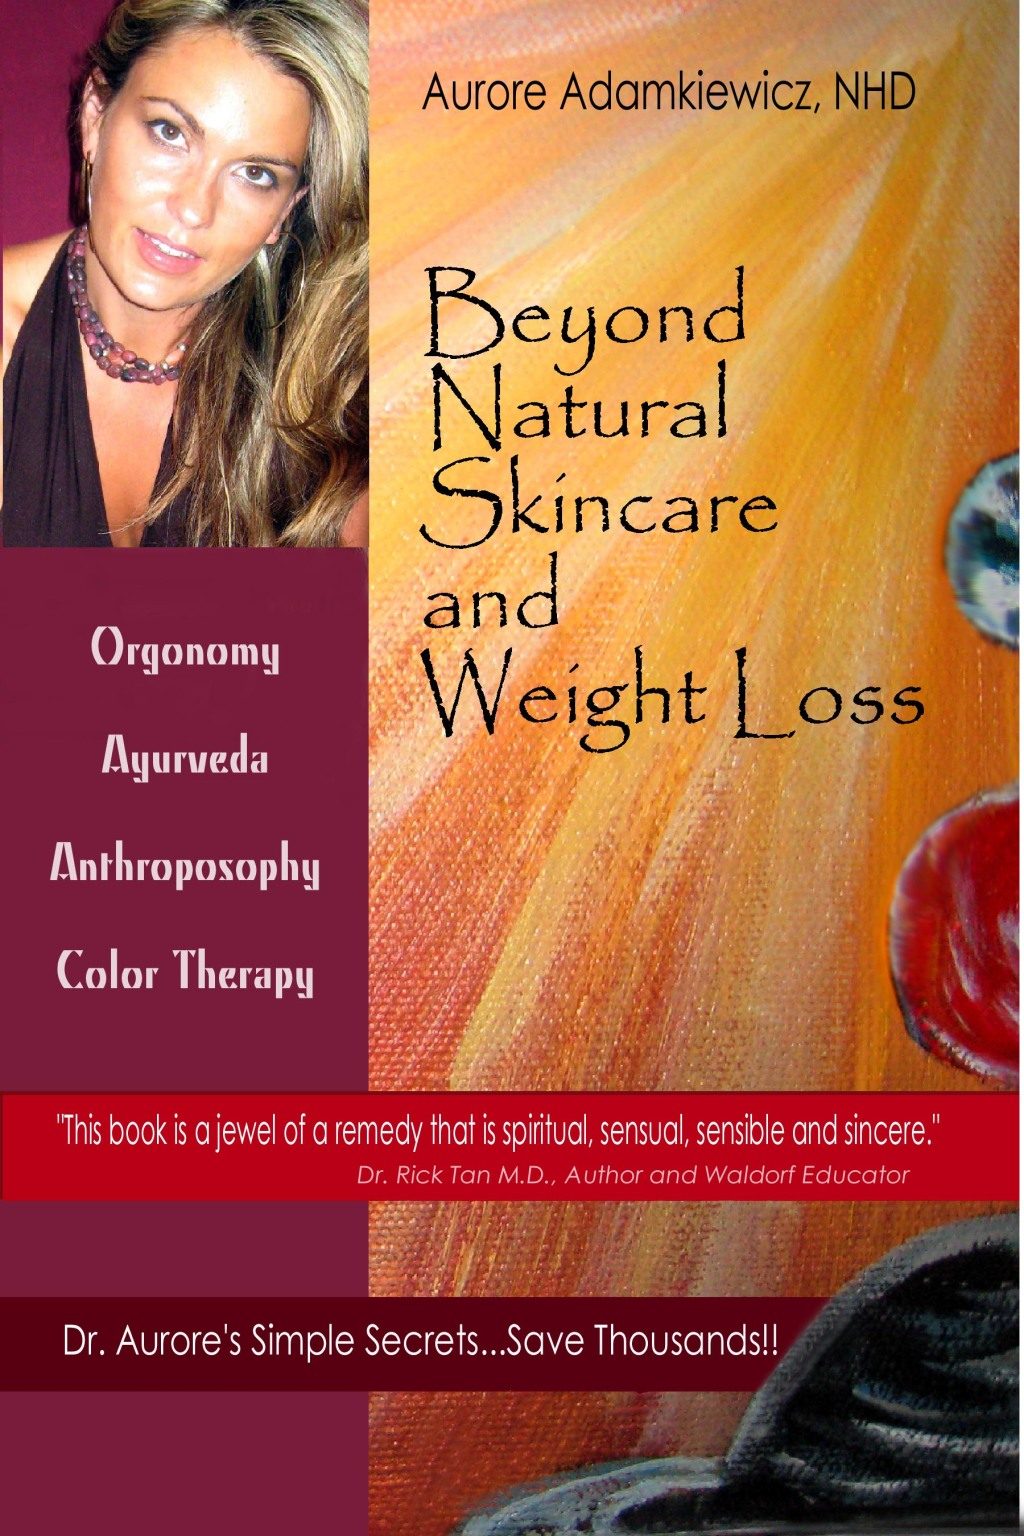 Dr. Aurore's third book in her body/mind natural health series